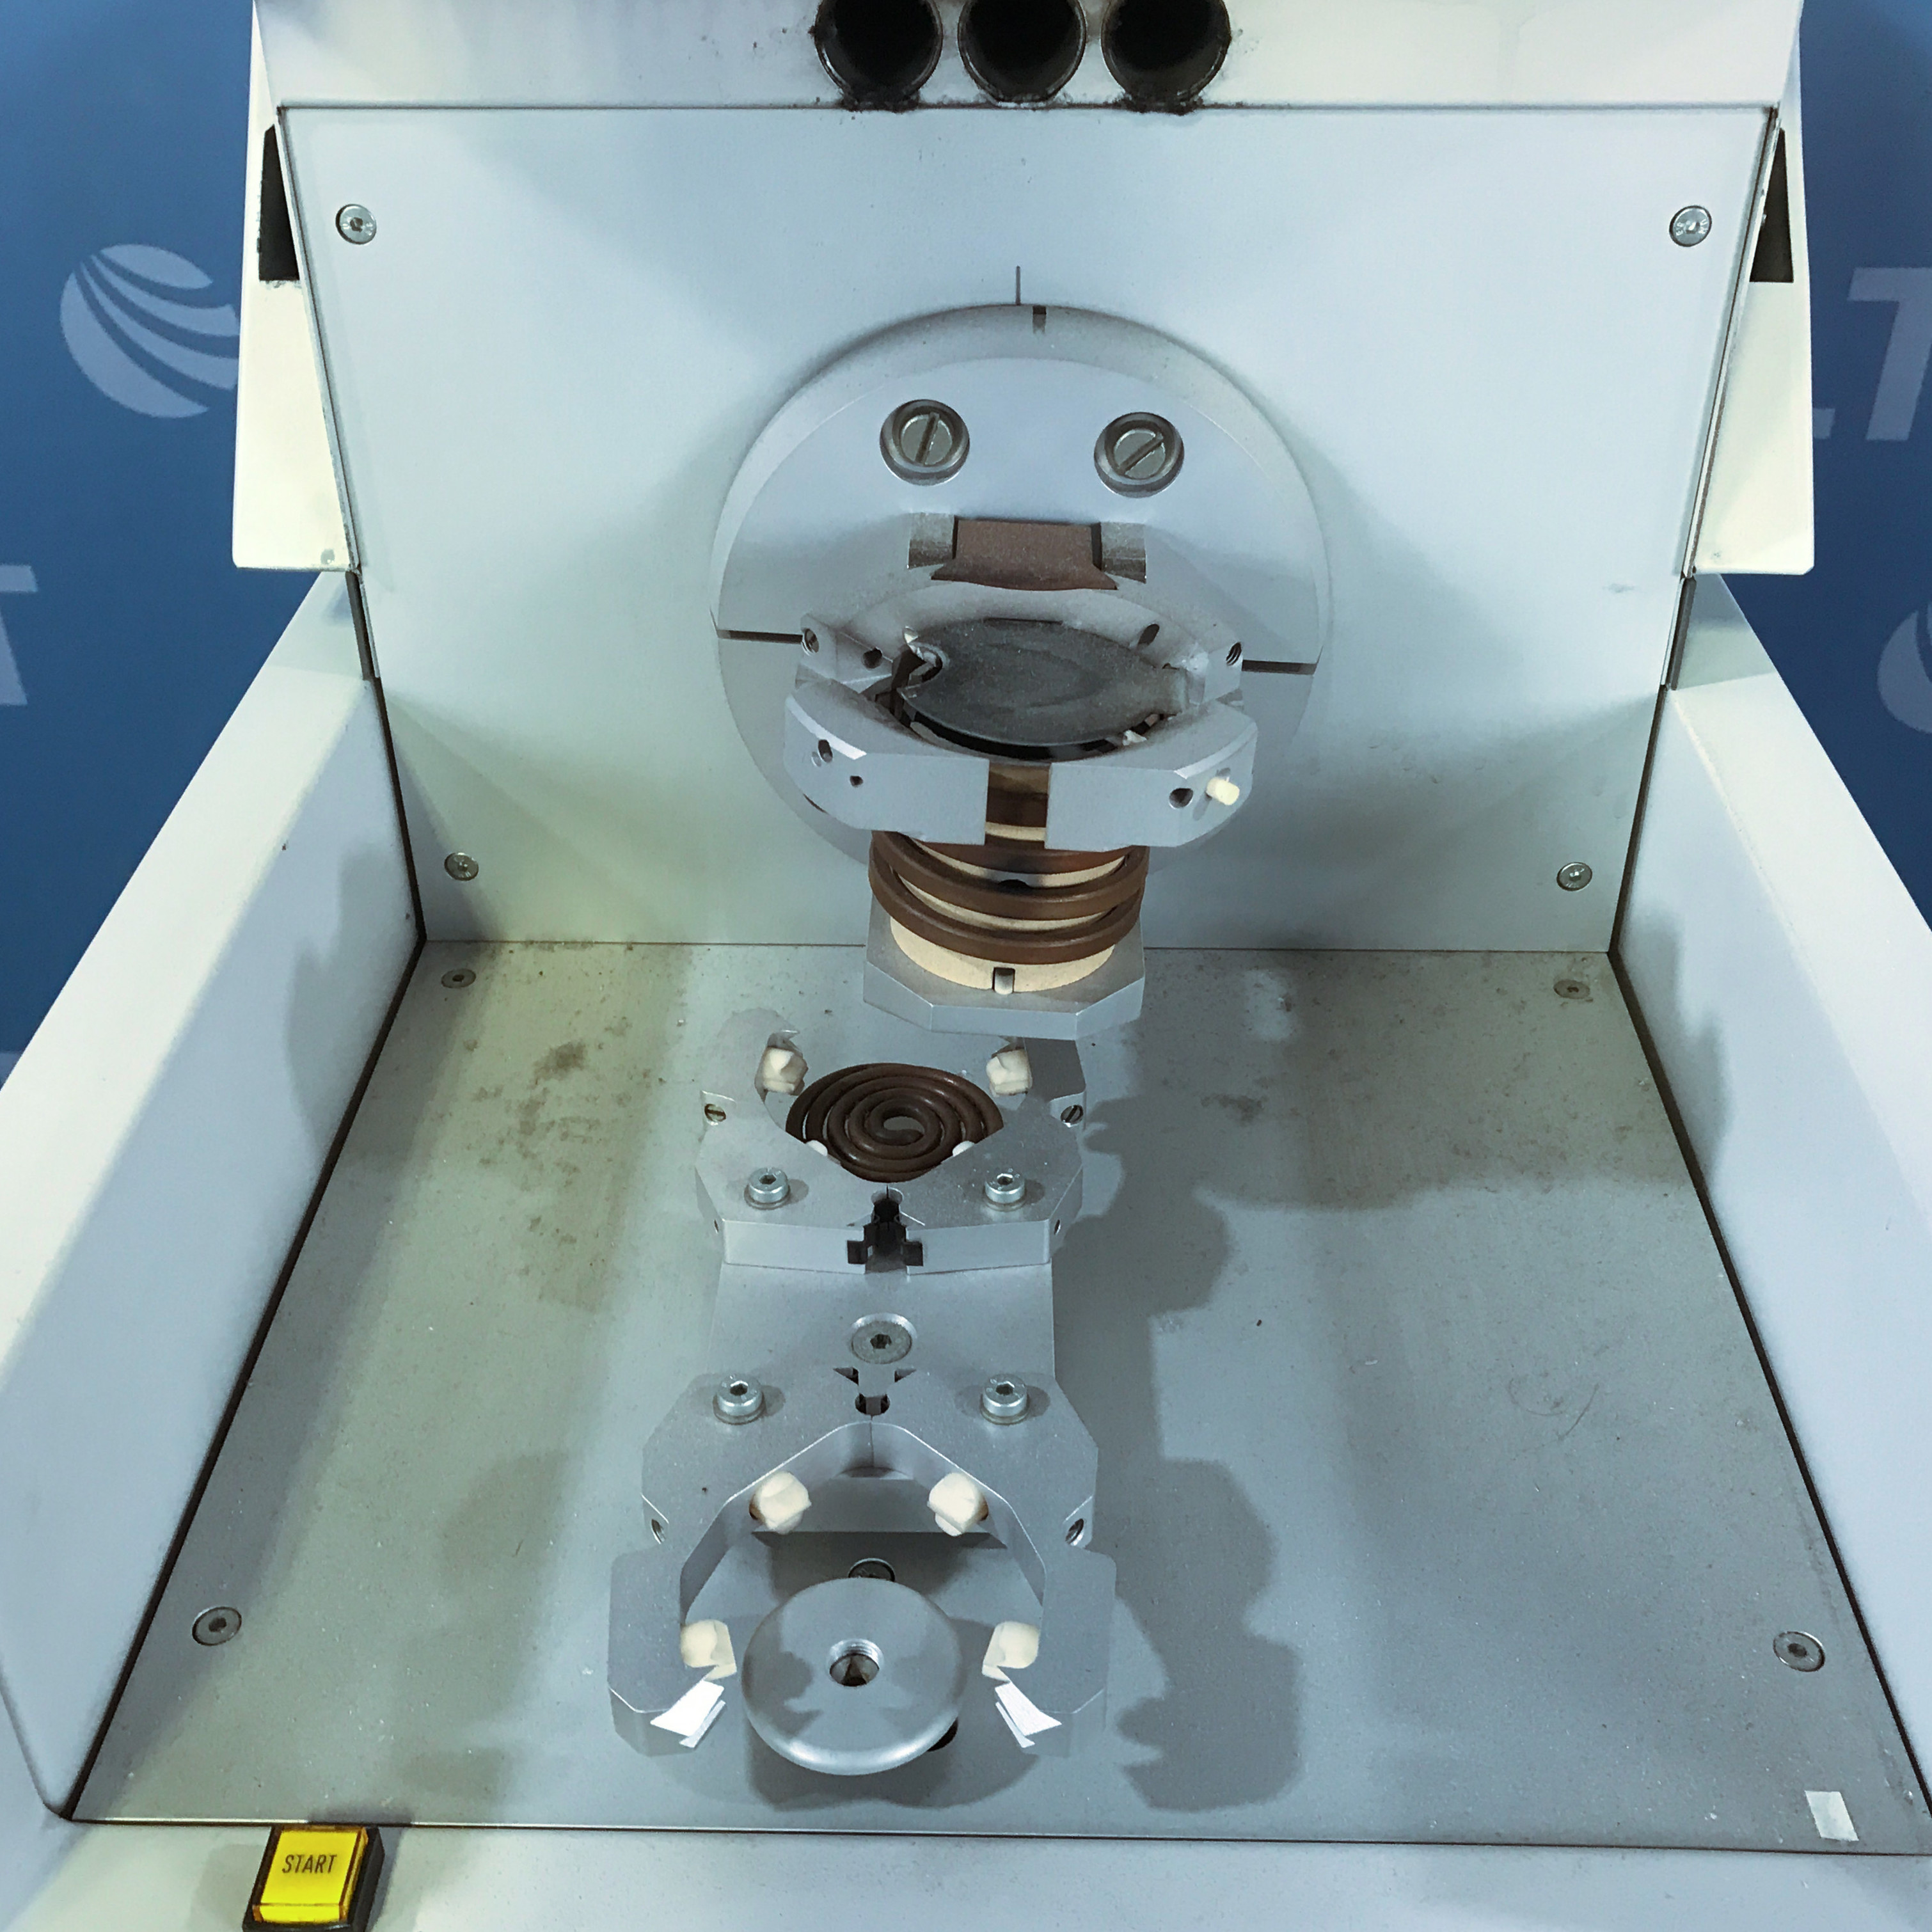 Philips PERL X'3 Automated Glass Bead Casting Machine Image